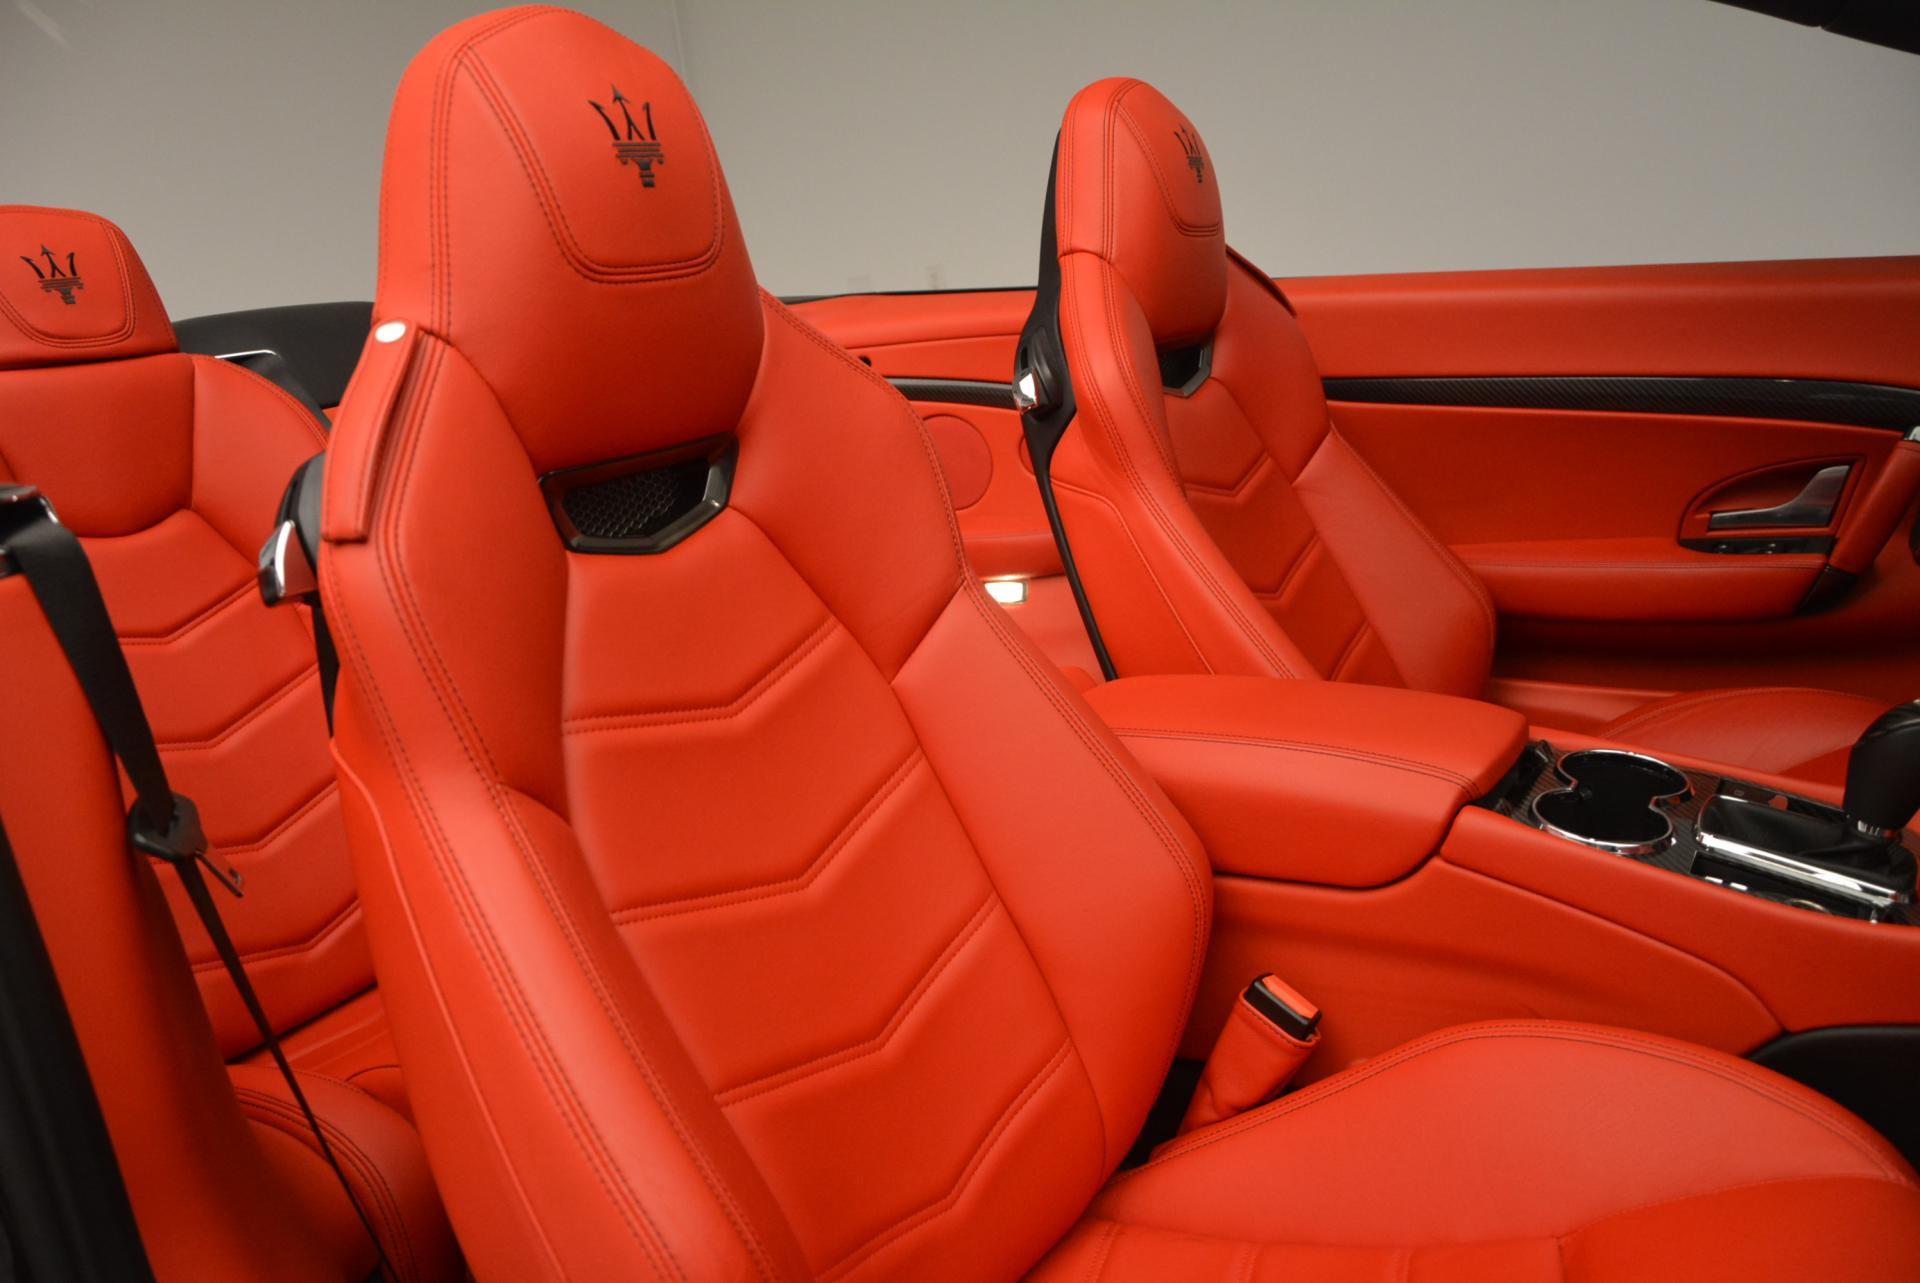 Used 2013 Maserati GranTurismo MC For Sale In Westport, CT 521_p29